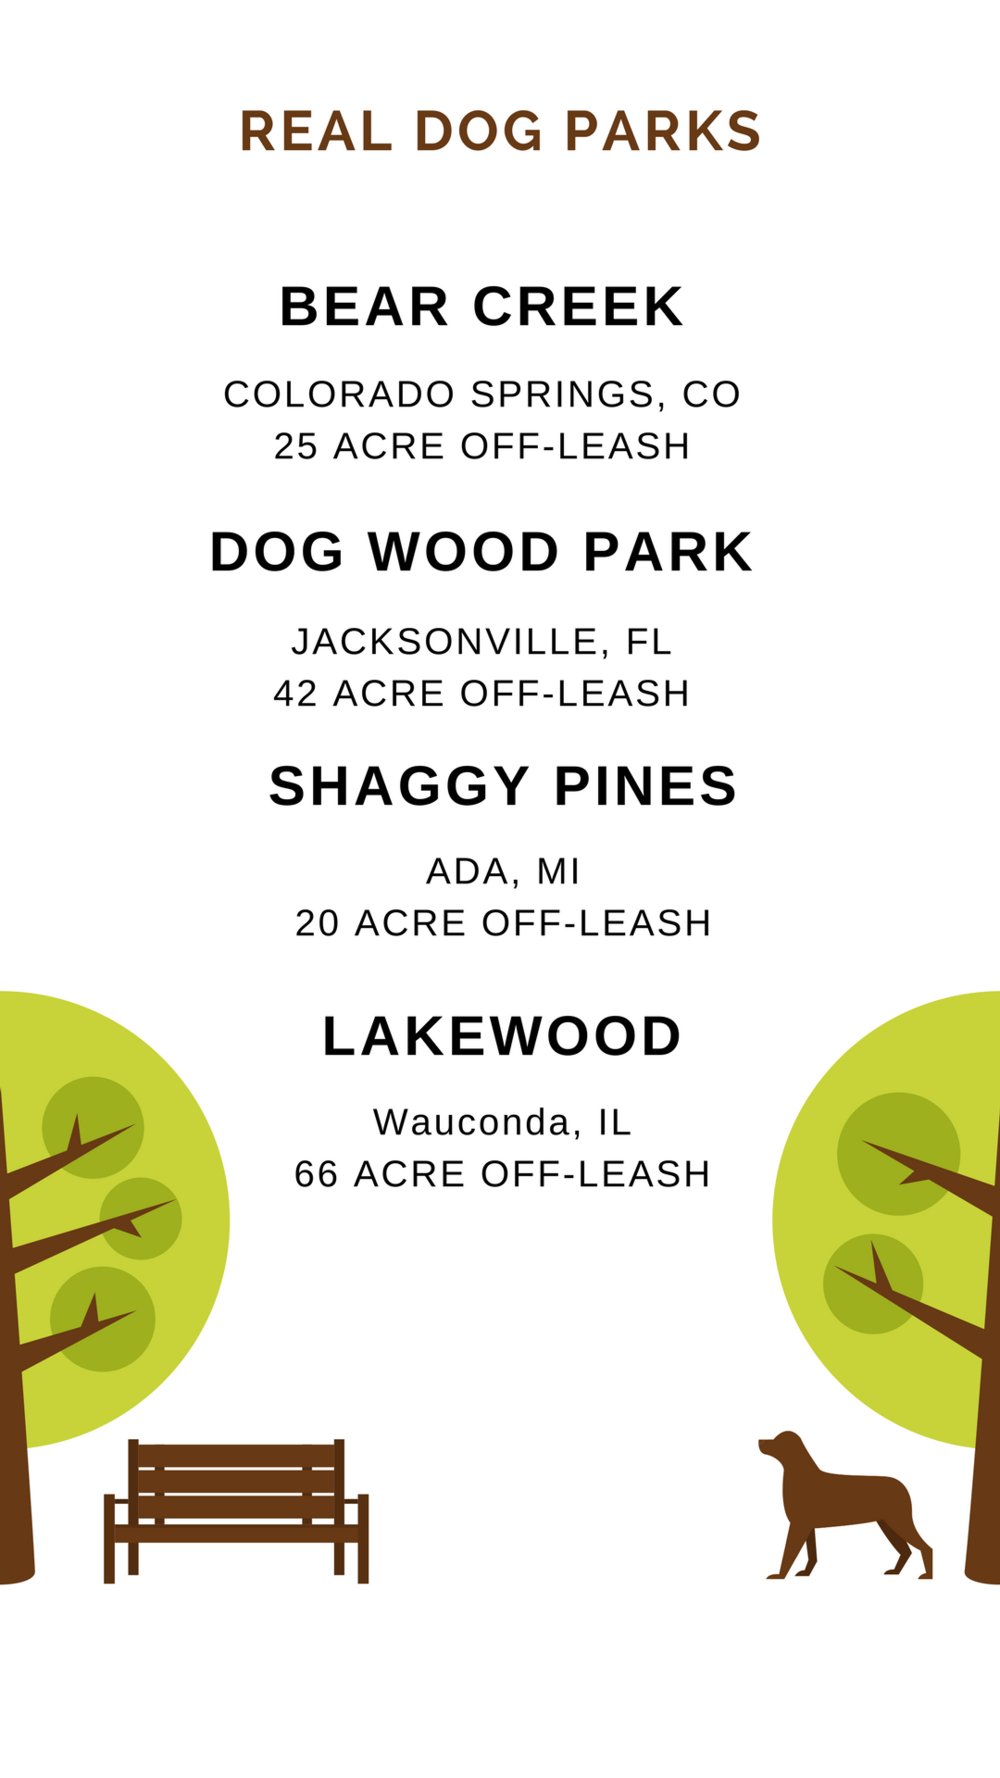 REAL DOG PARKS.png